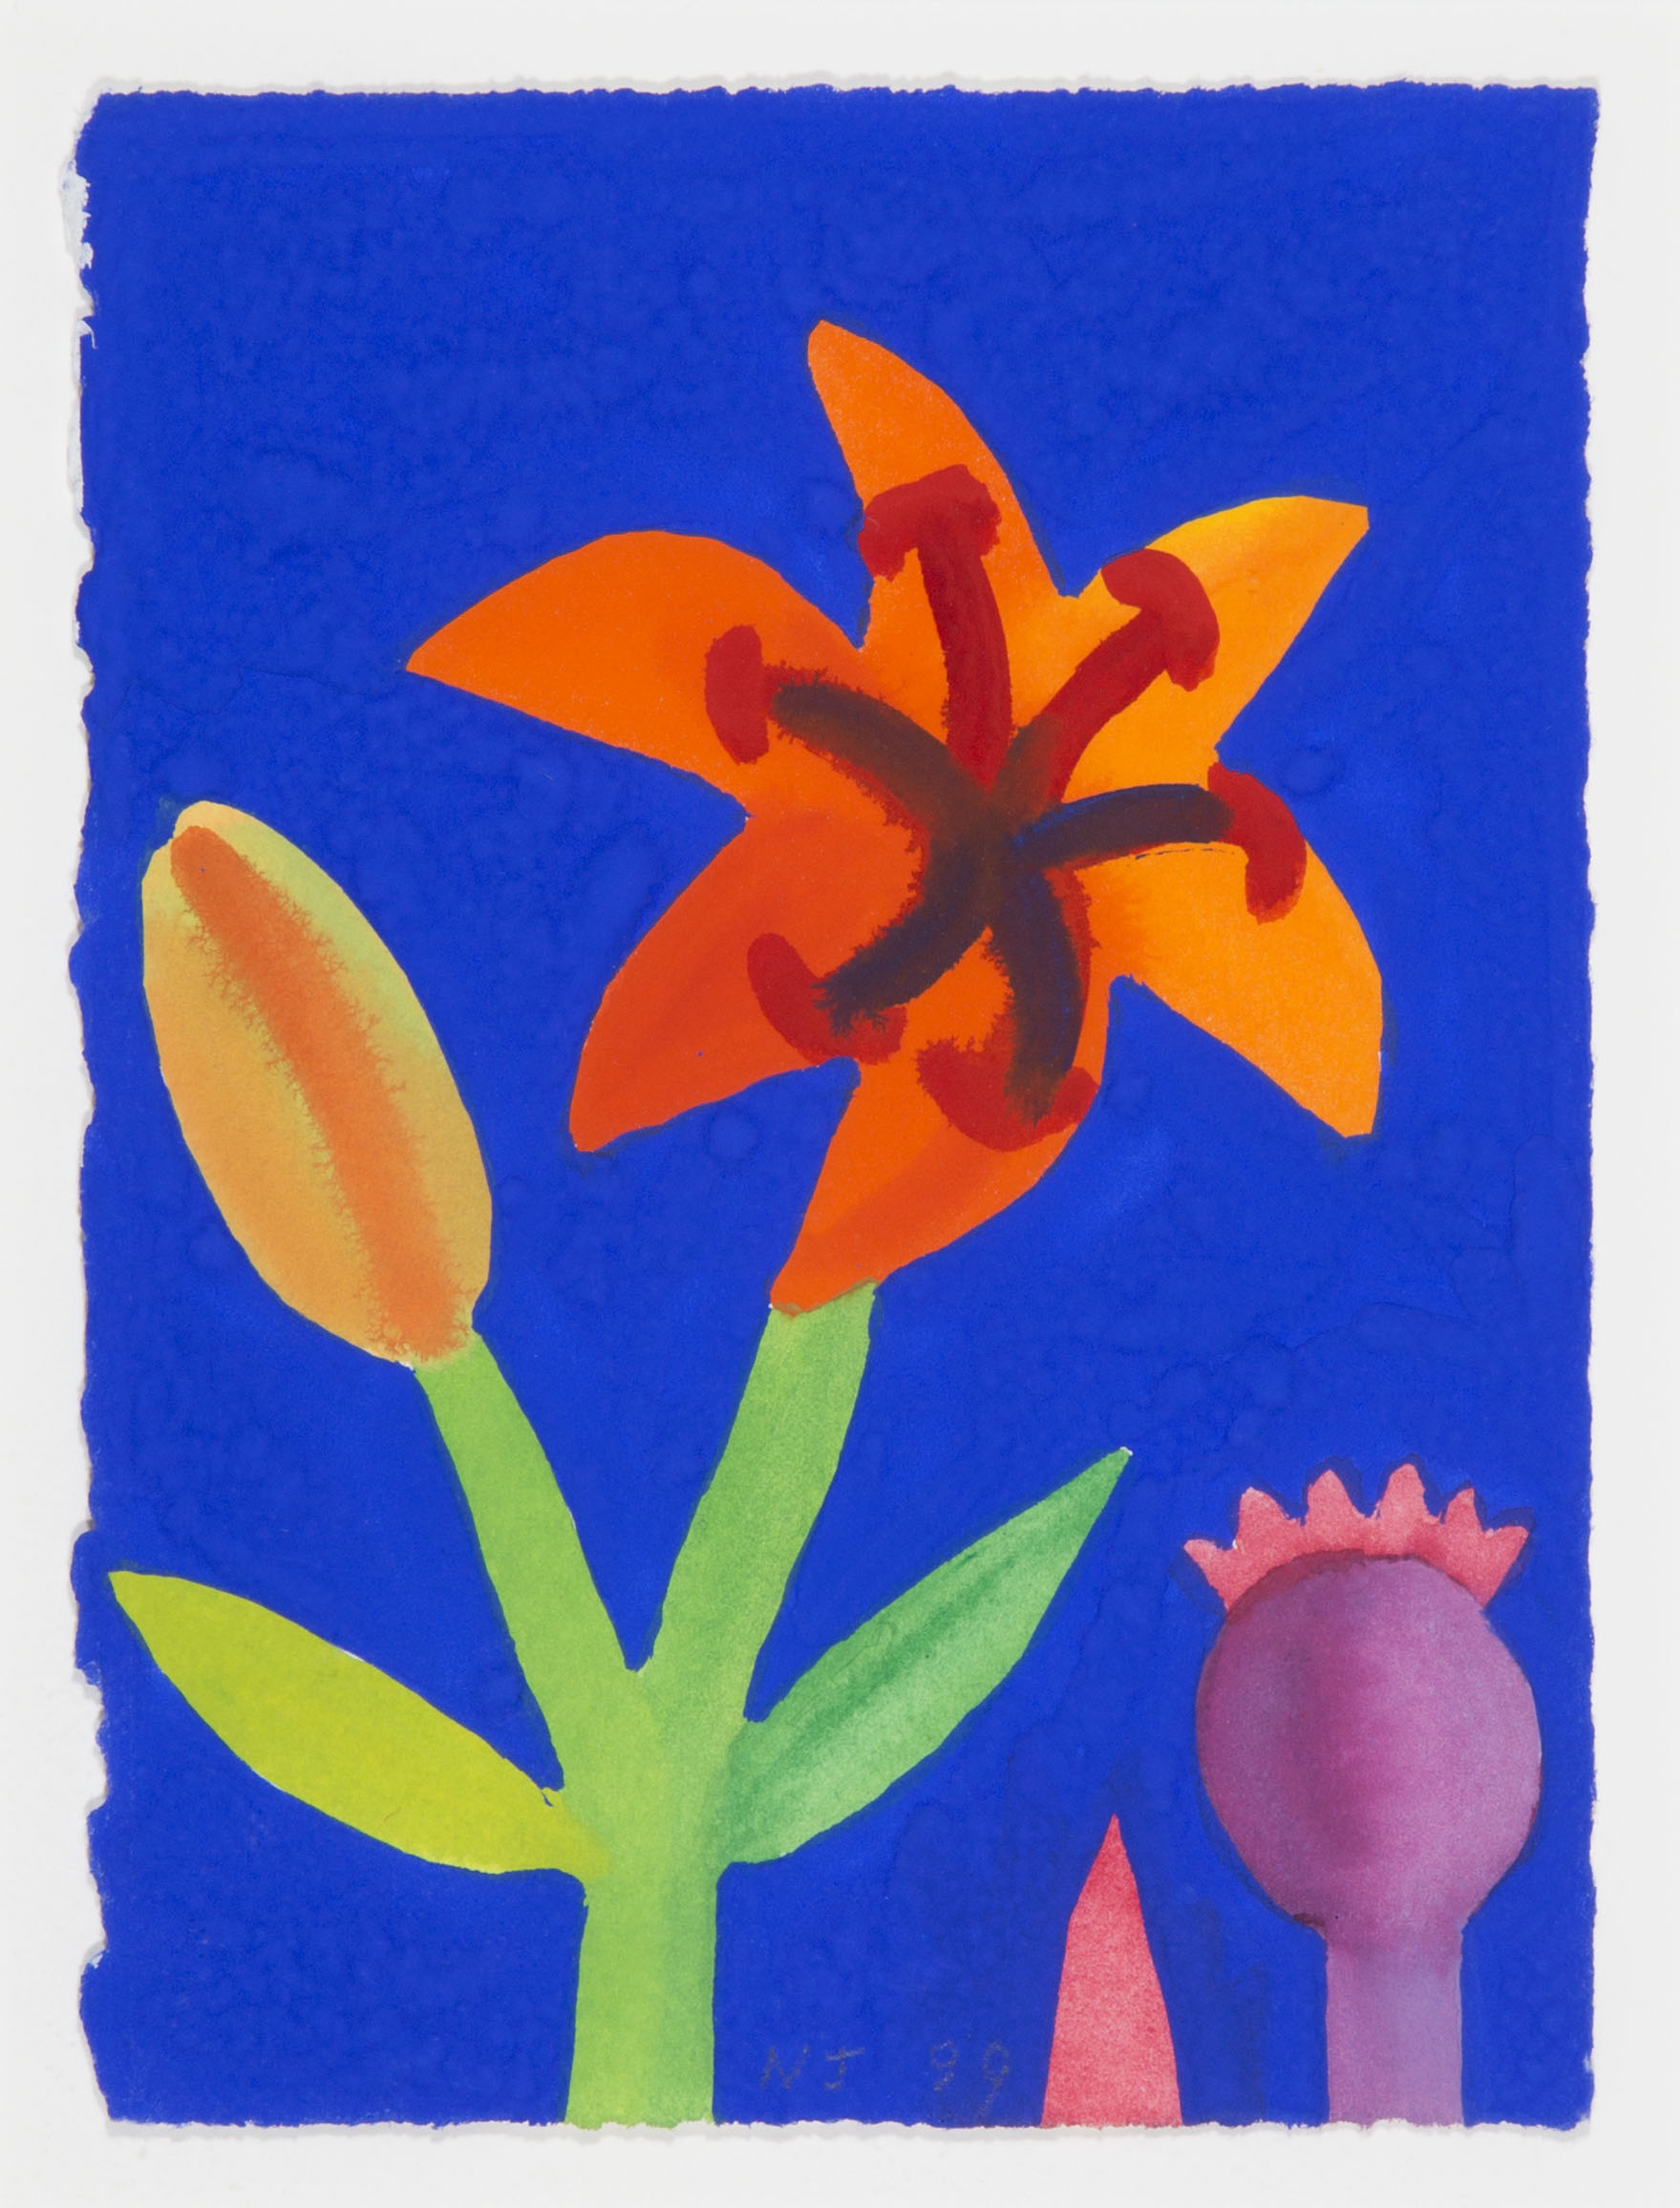 Orange Lily with Poppy Seed Head on Royal Blue [204-99]